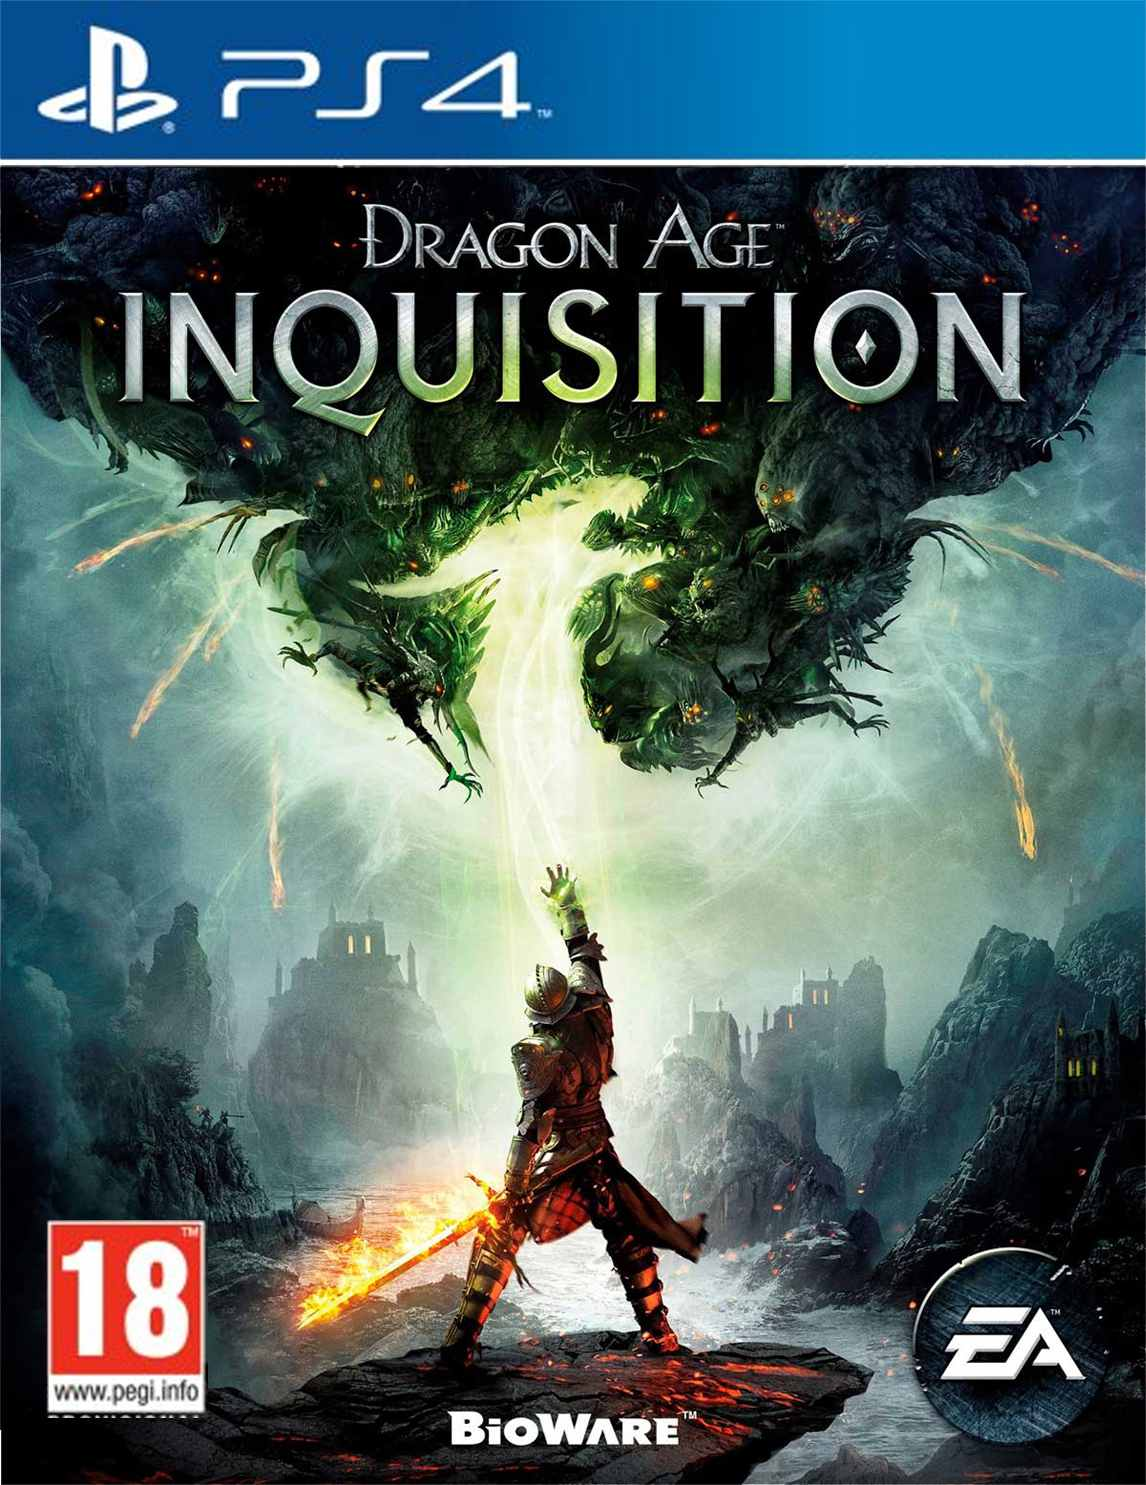 Ver Dragon Age Inquisition Ps4